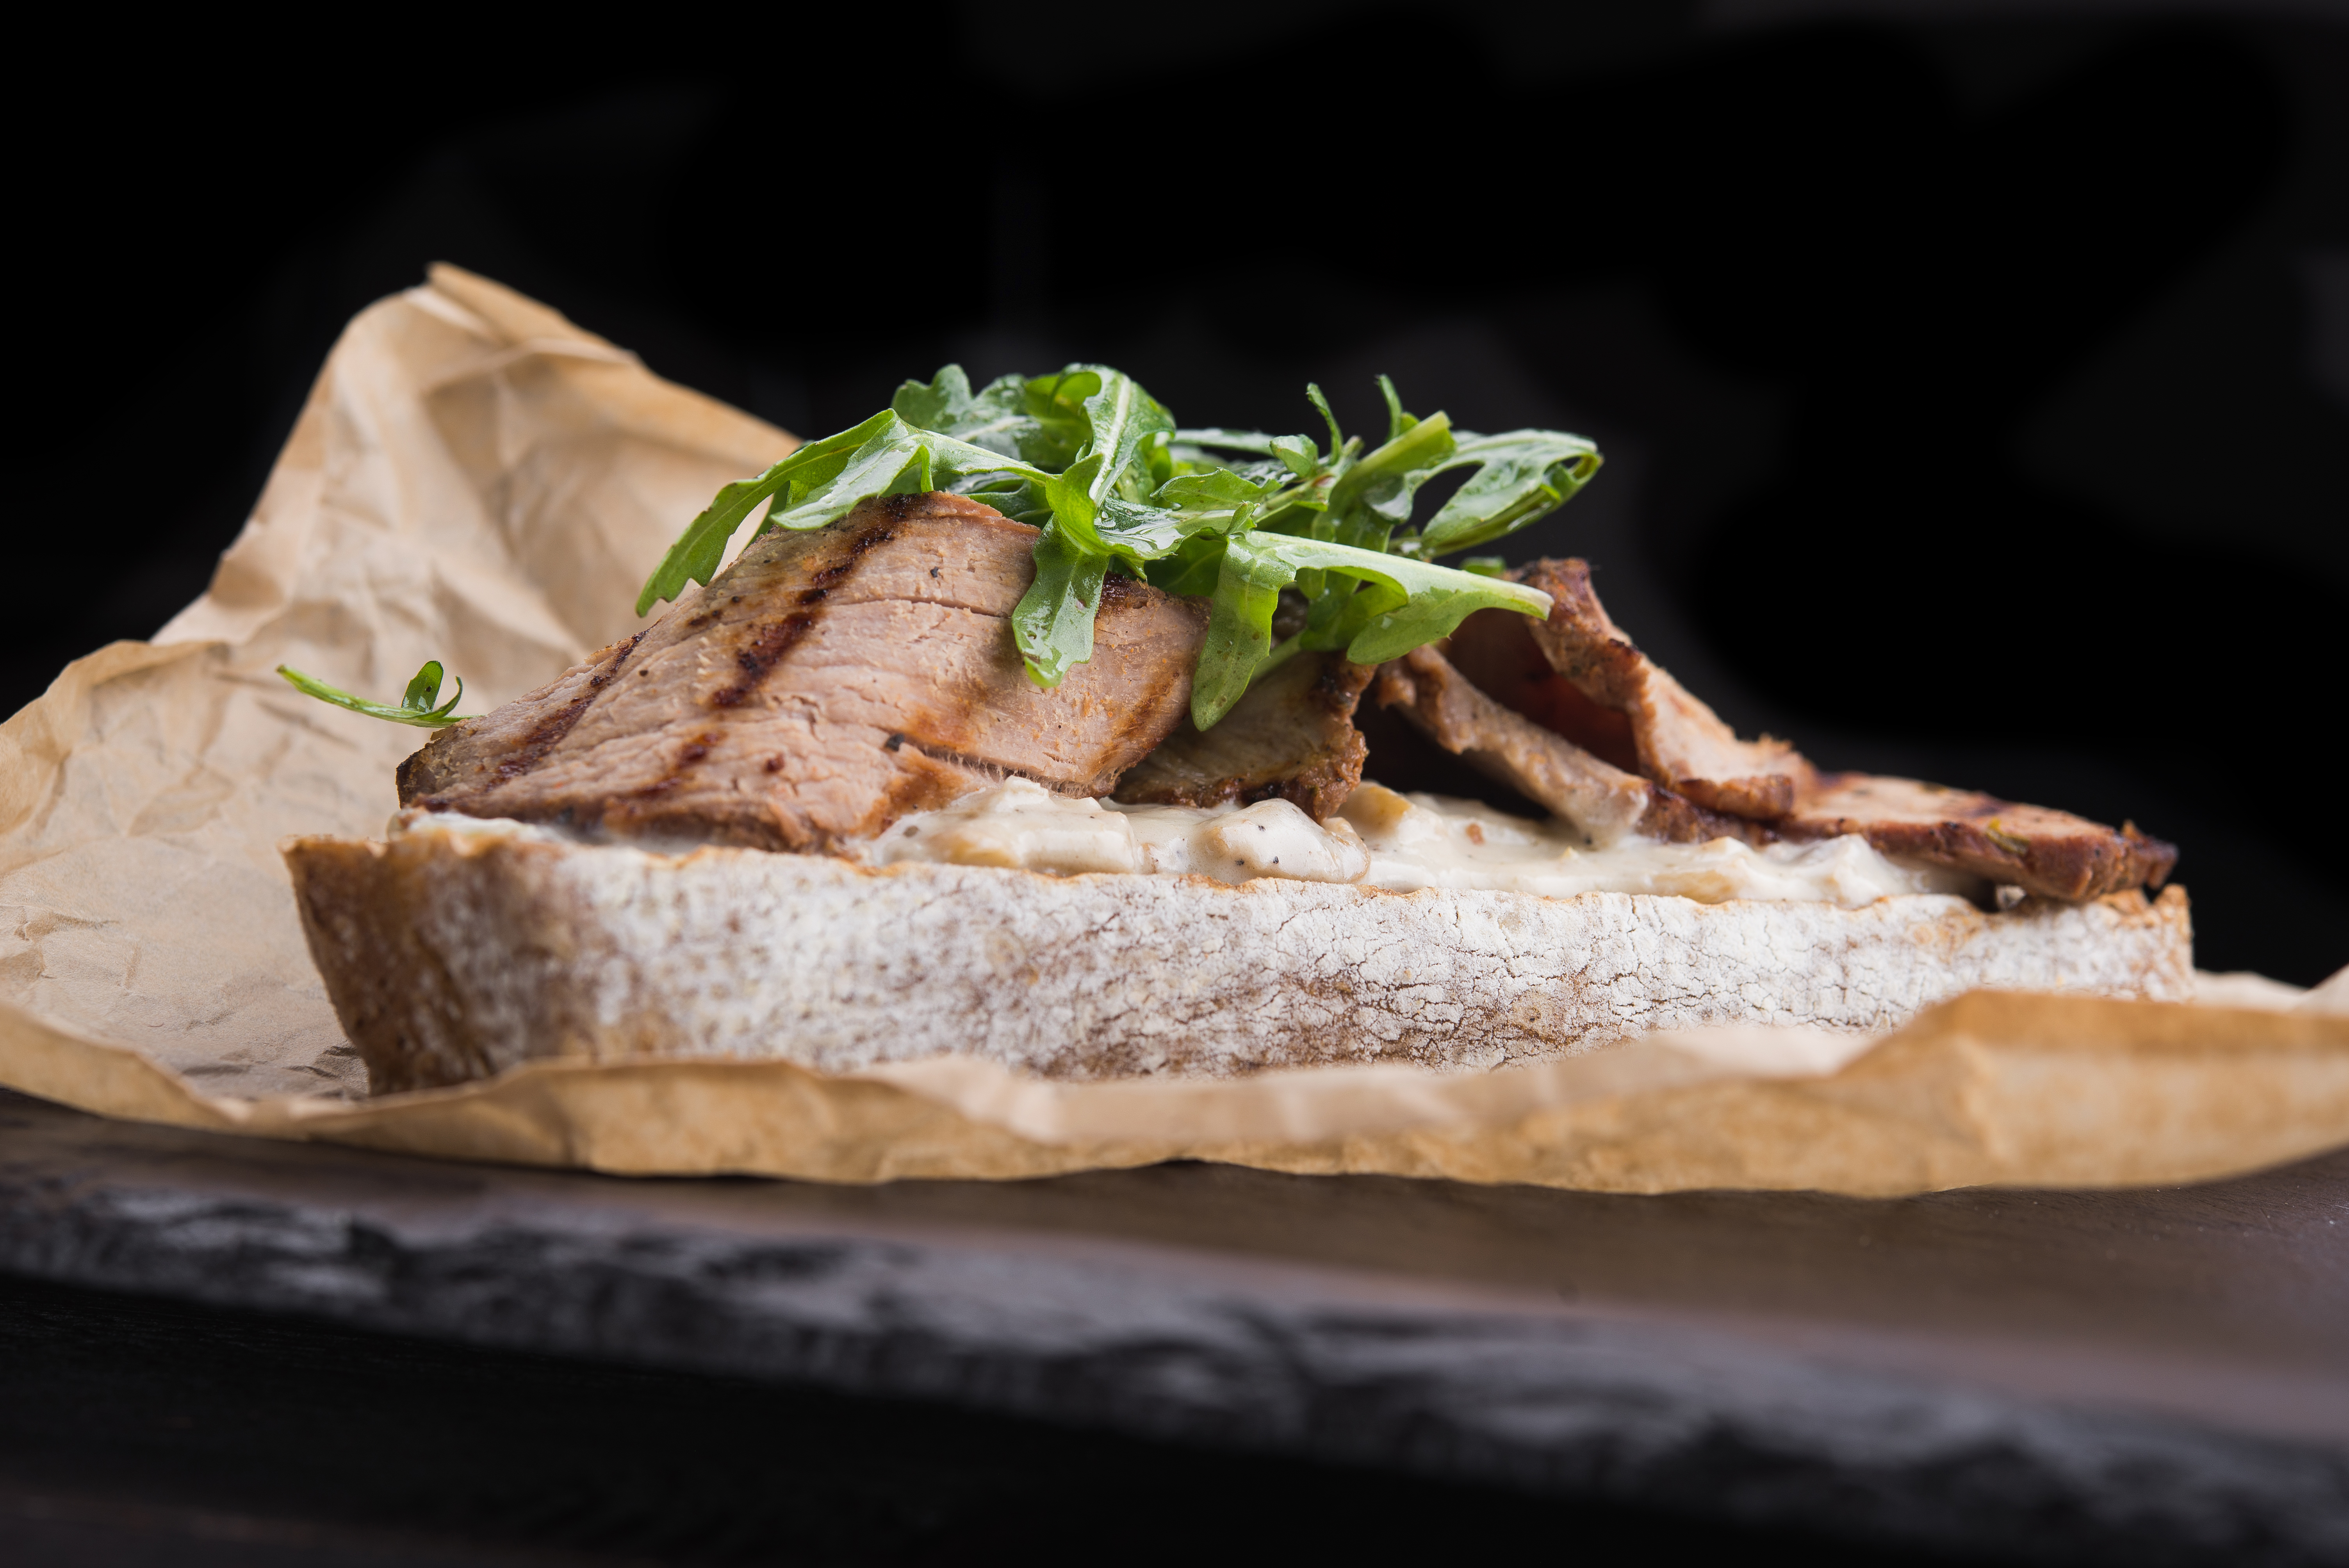 sandwich with mushroom sauce and beef on stone board